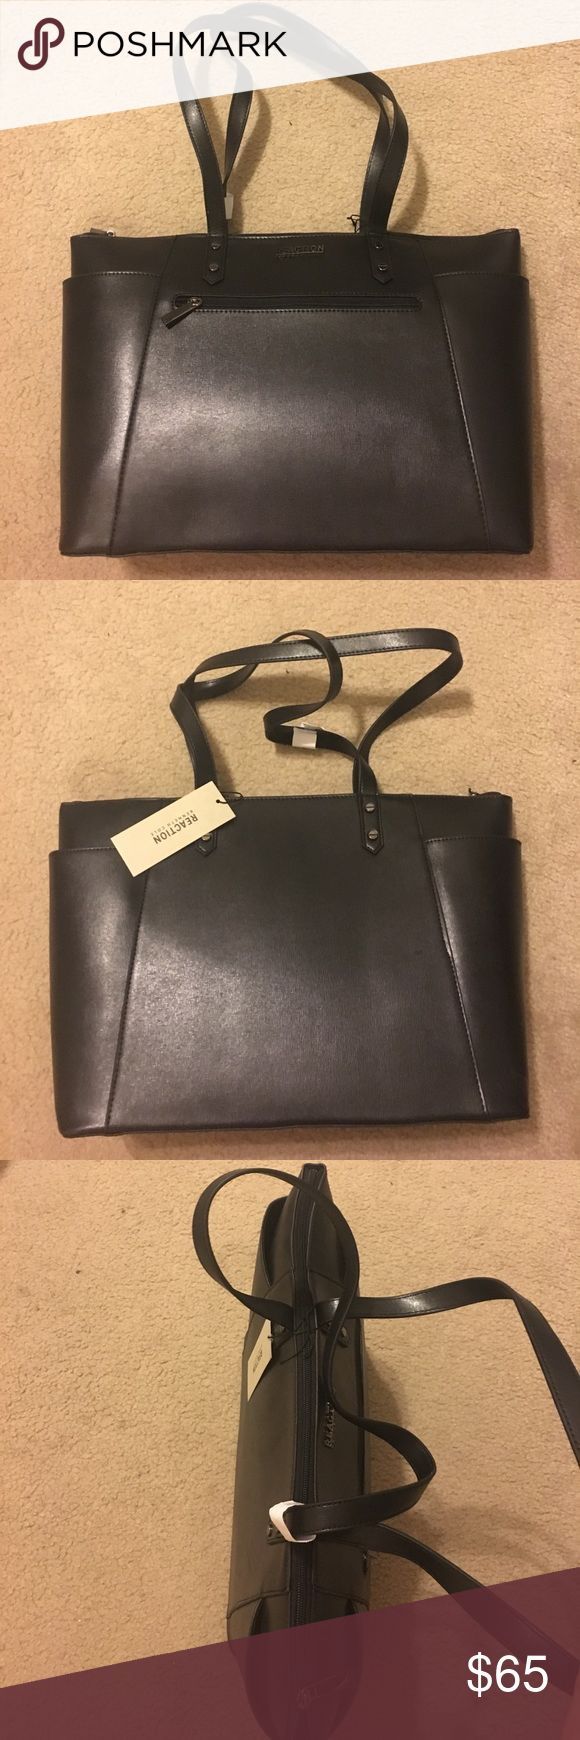 best 20 laptop tote ideas on pinterest big shoulder outfits bags and leather tote bags. Black Bedroom Furniture Sets. Home Design Ideas